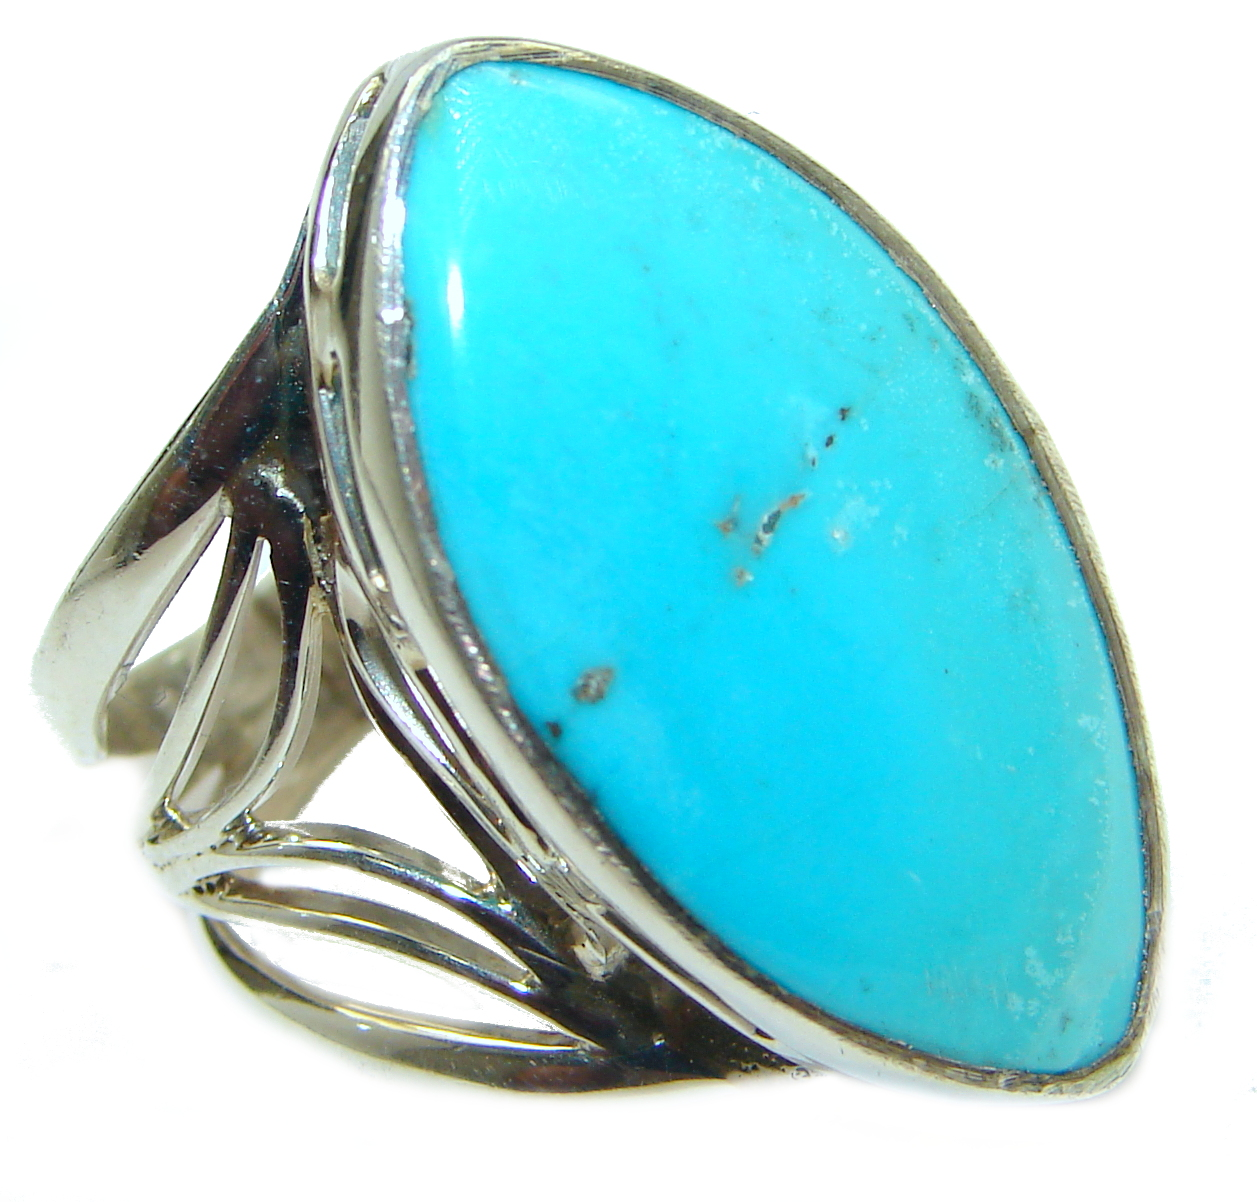 Genuine Sleeping Beauty Turquoise .925 Sterling Silver handcrafted Ring size 8